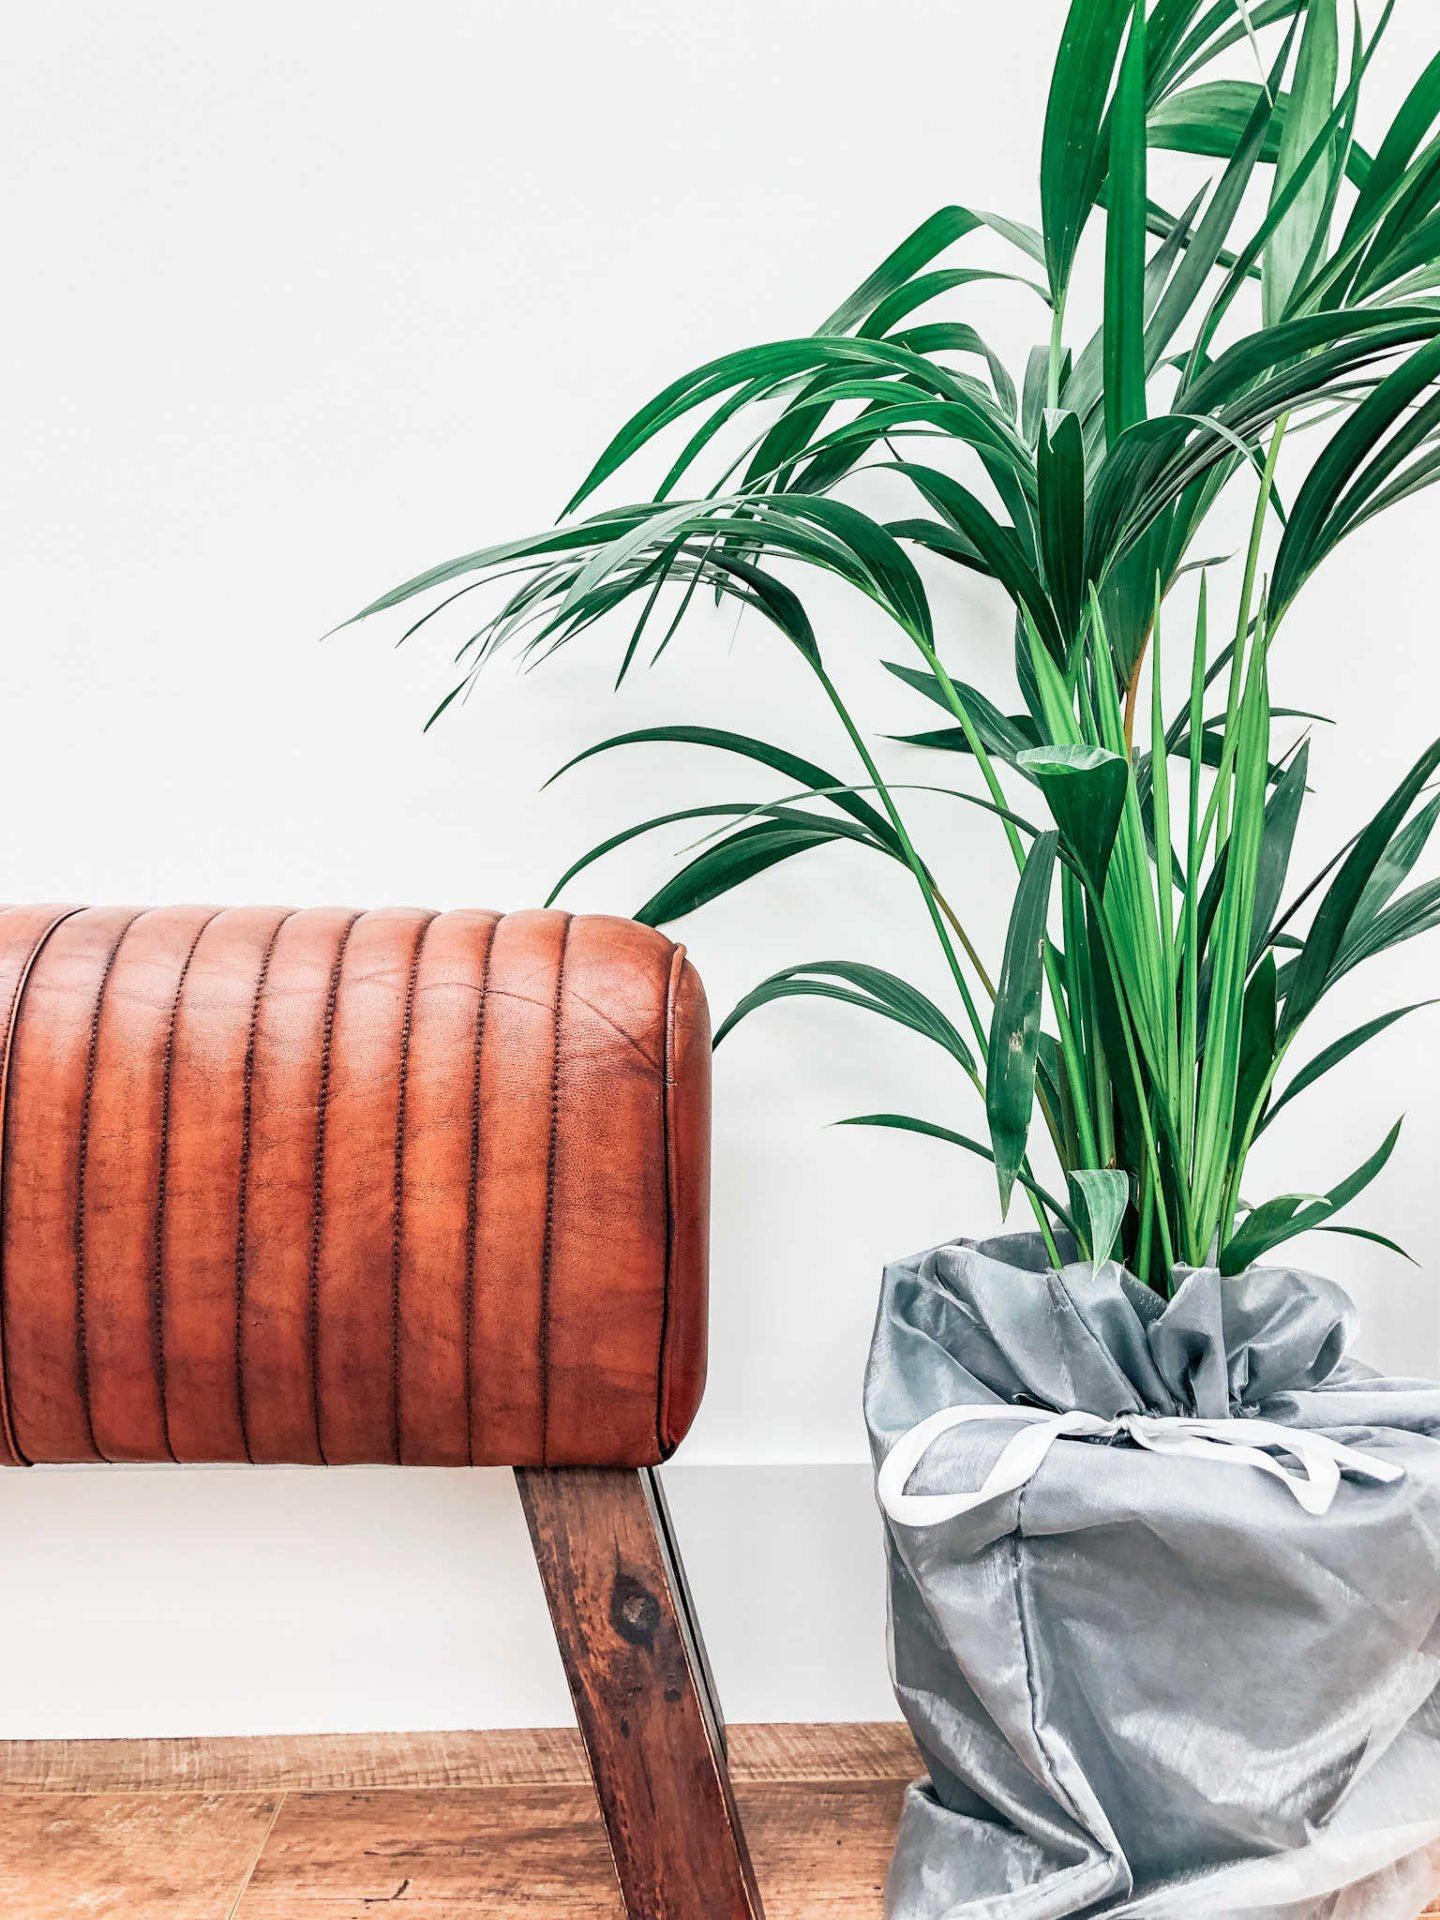 Using plants to accessorise a room